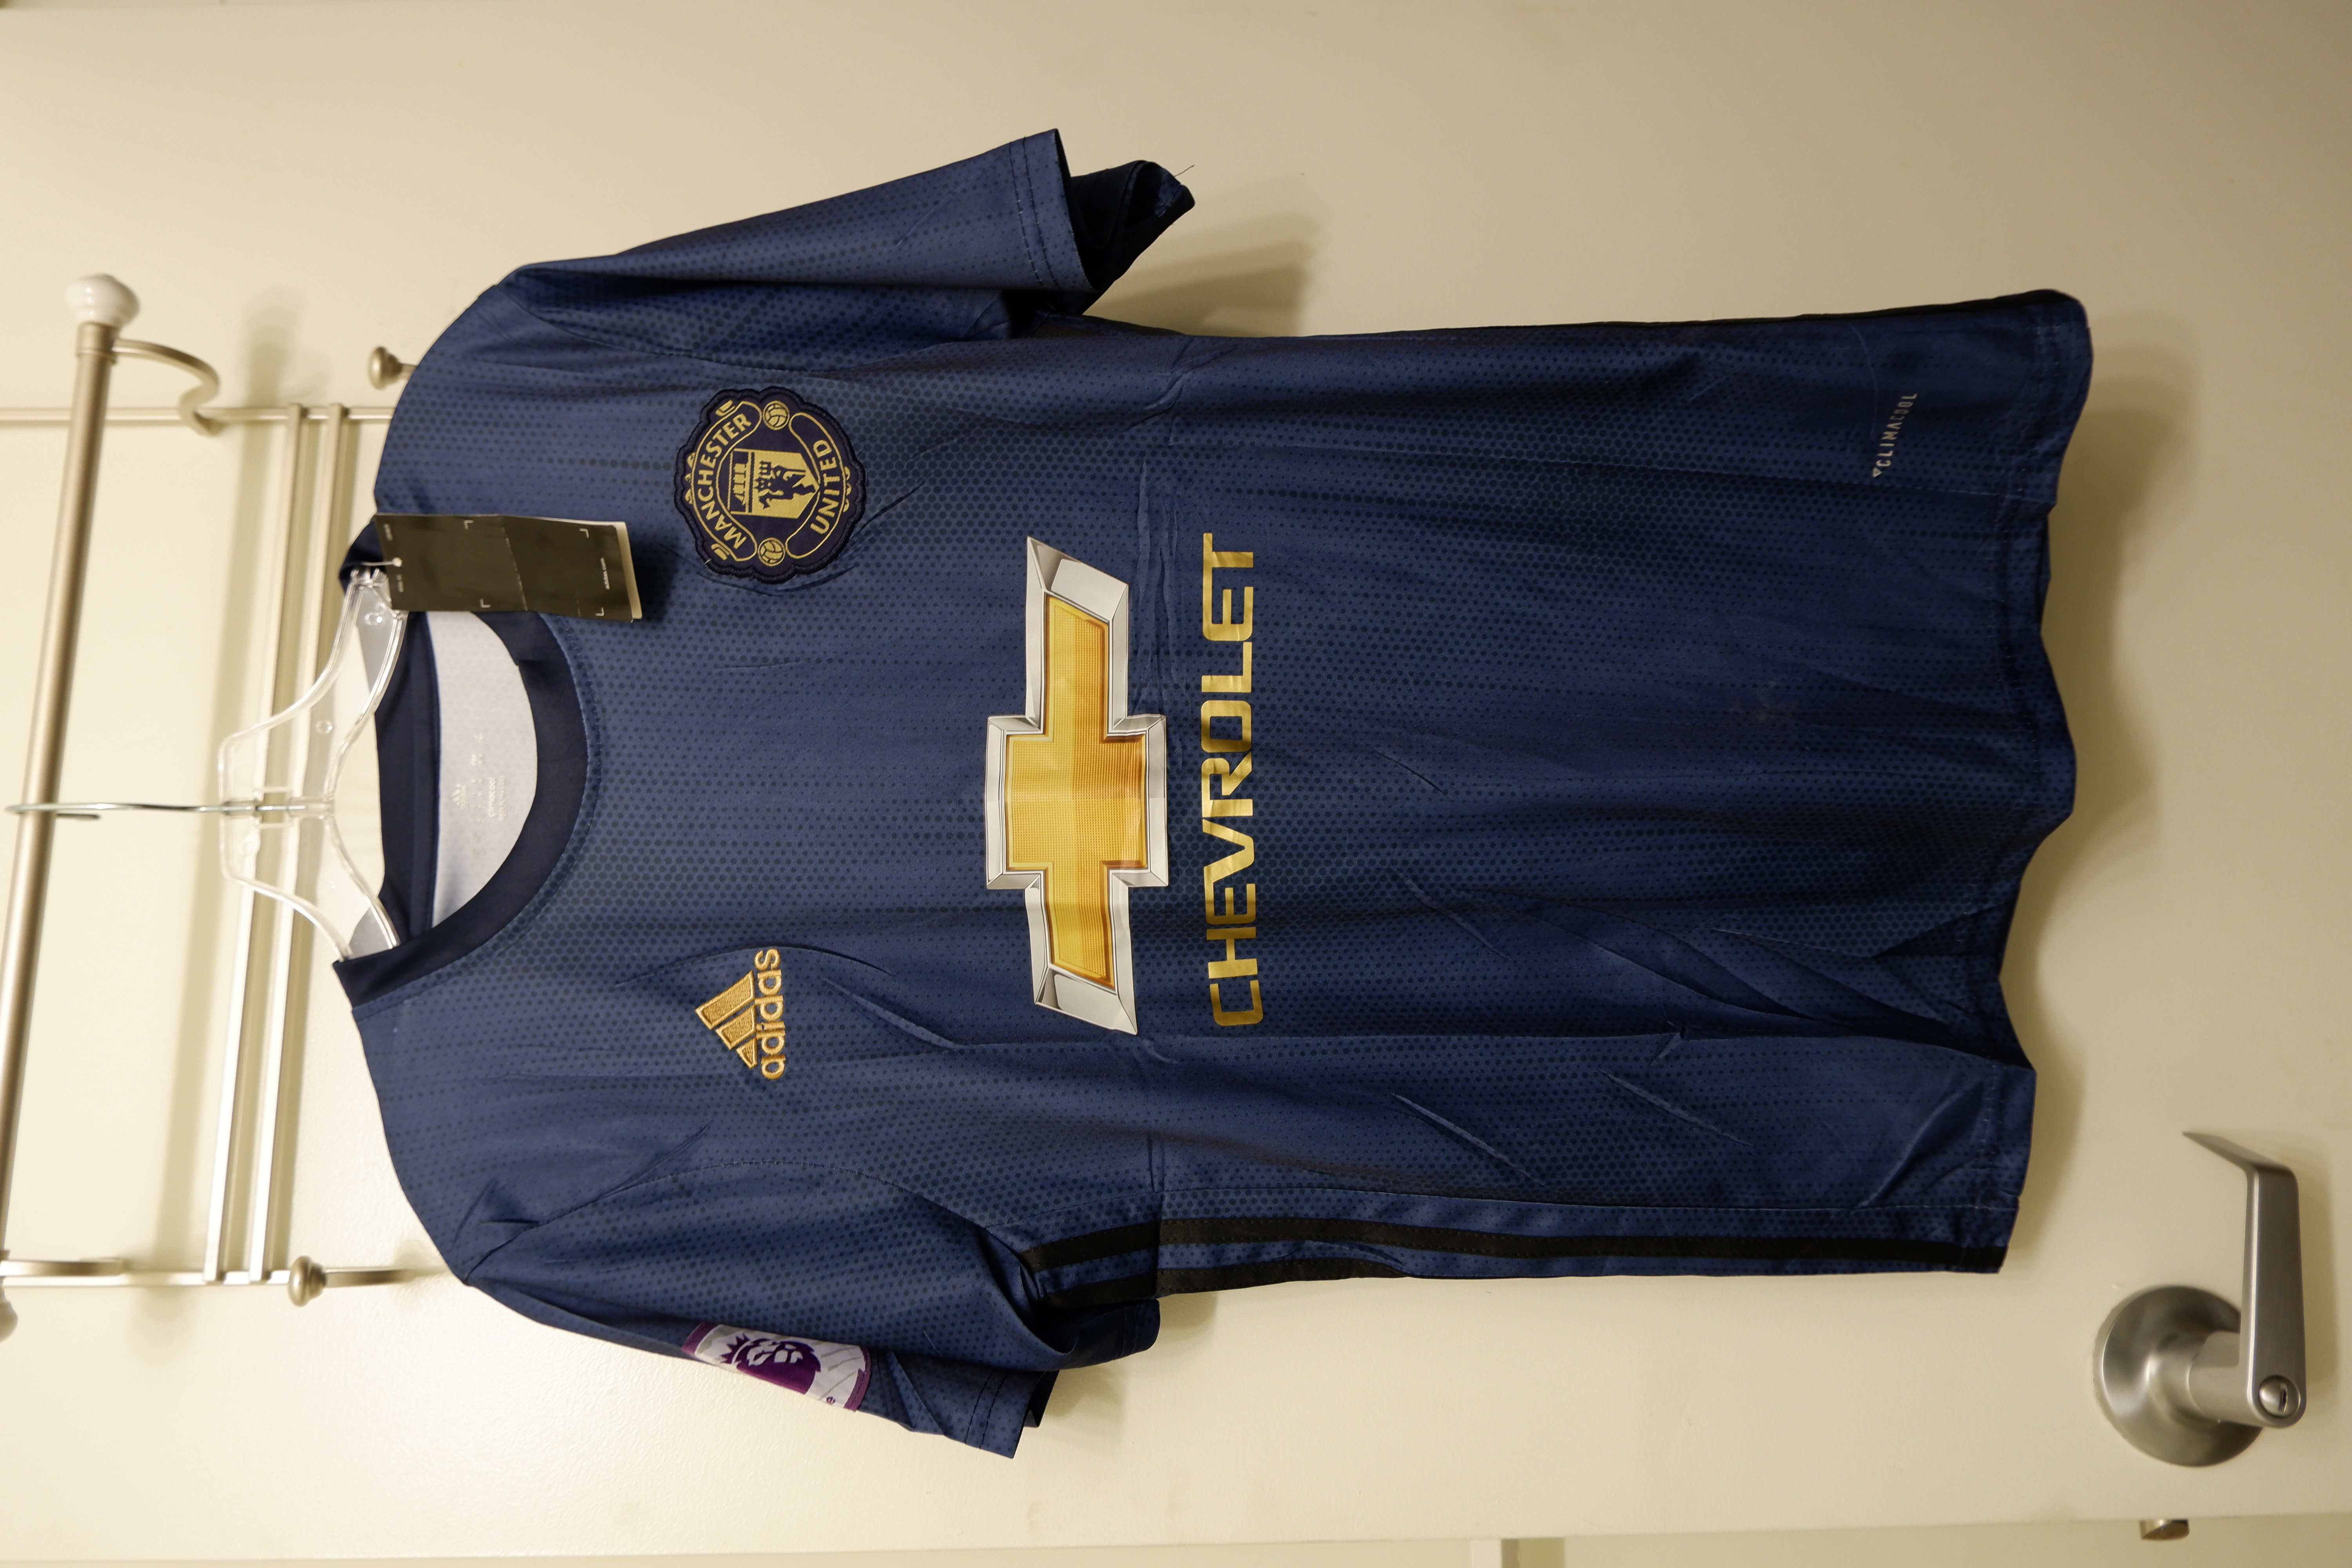 1ce54c78c Adidas Nwt Manchester United 2018 19 3rd Jersey - Plain Nwt